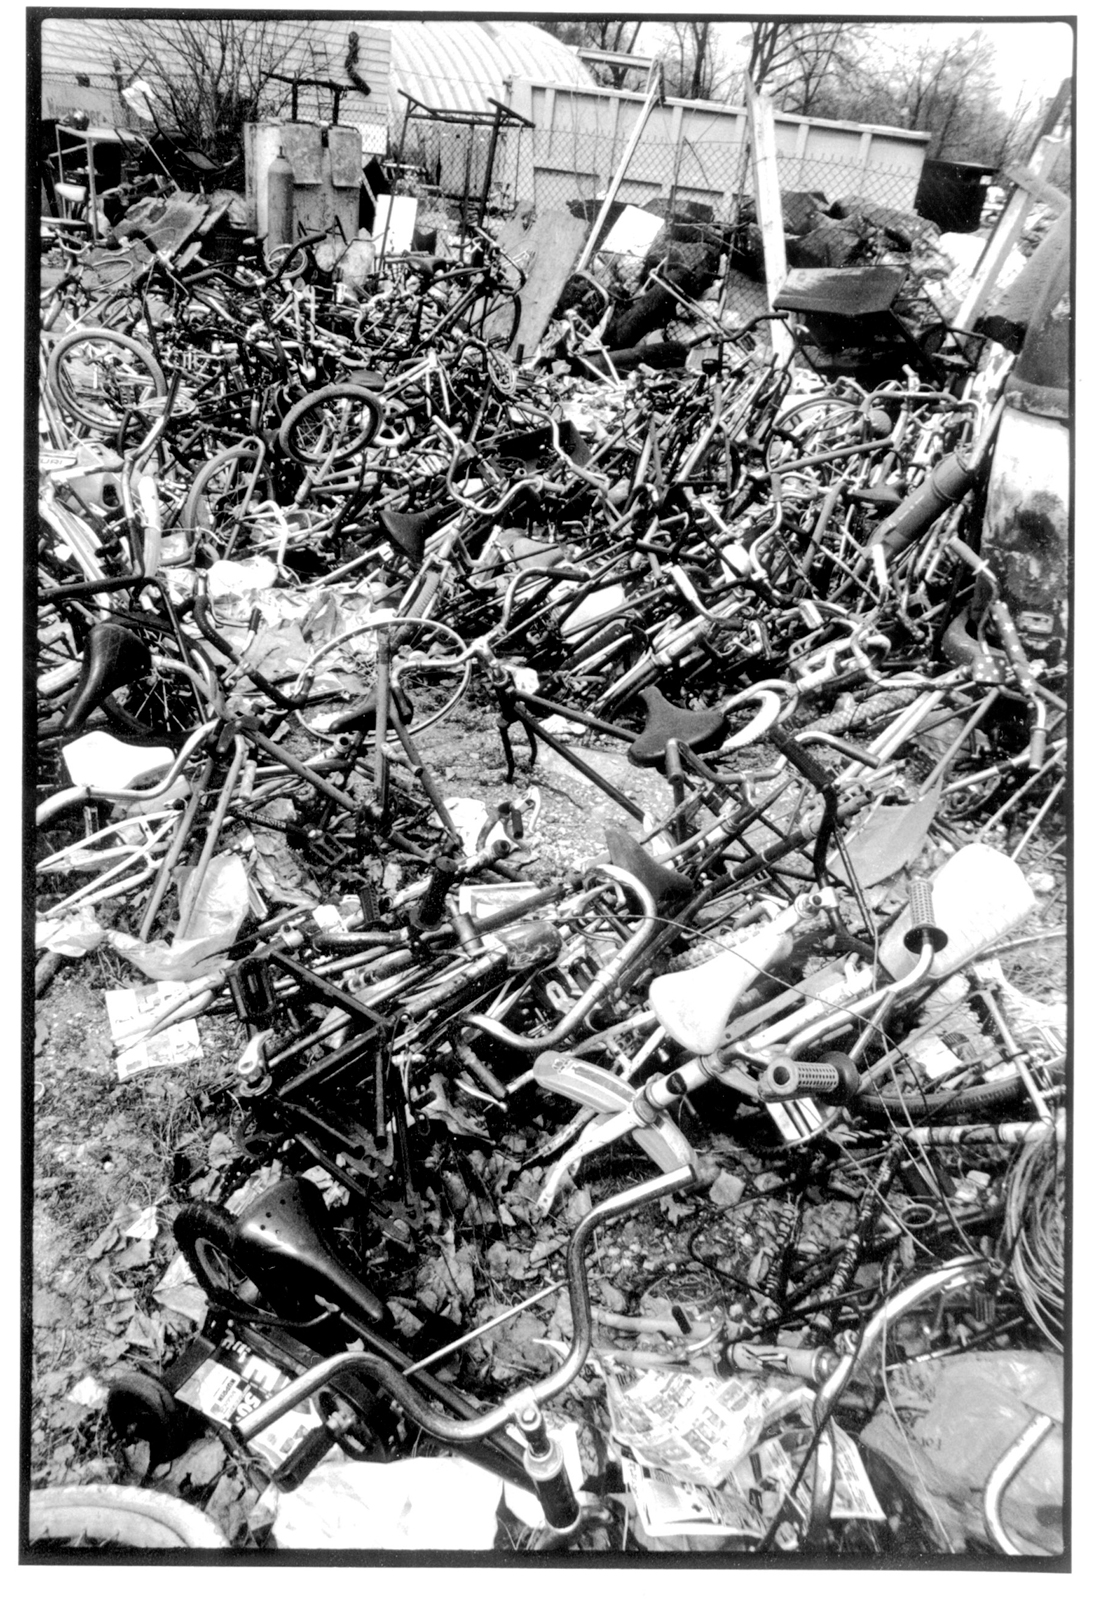 Pile of bikes at the former home of Bike Furniture Design,  Blackstone Bicycle Works in Chicago